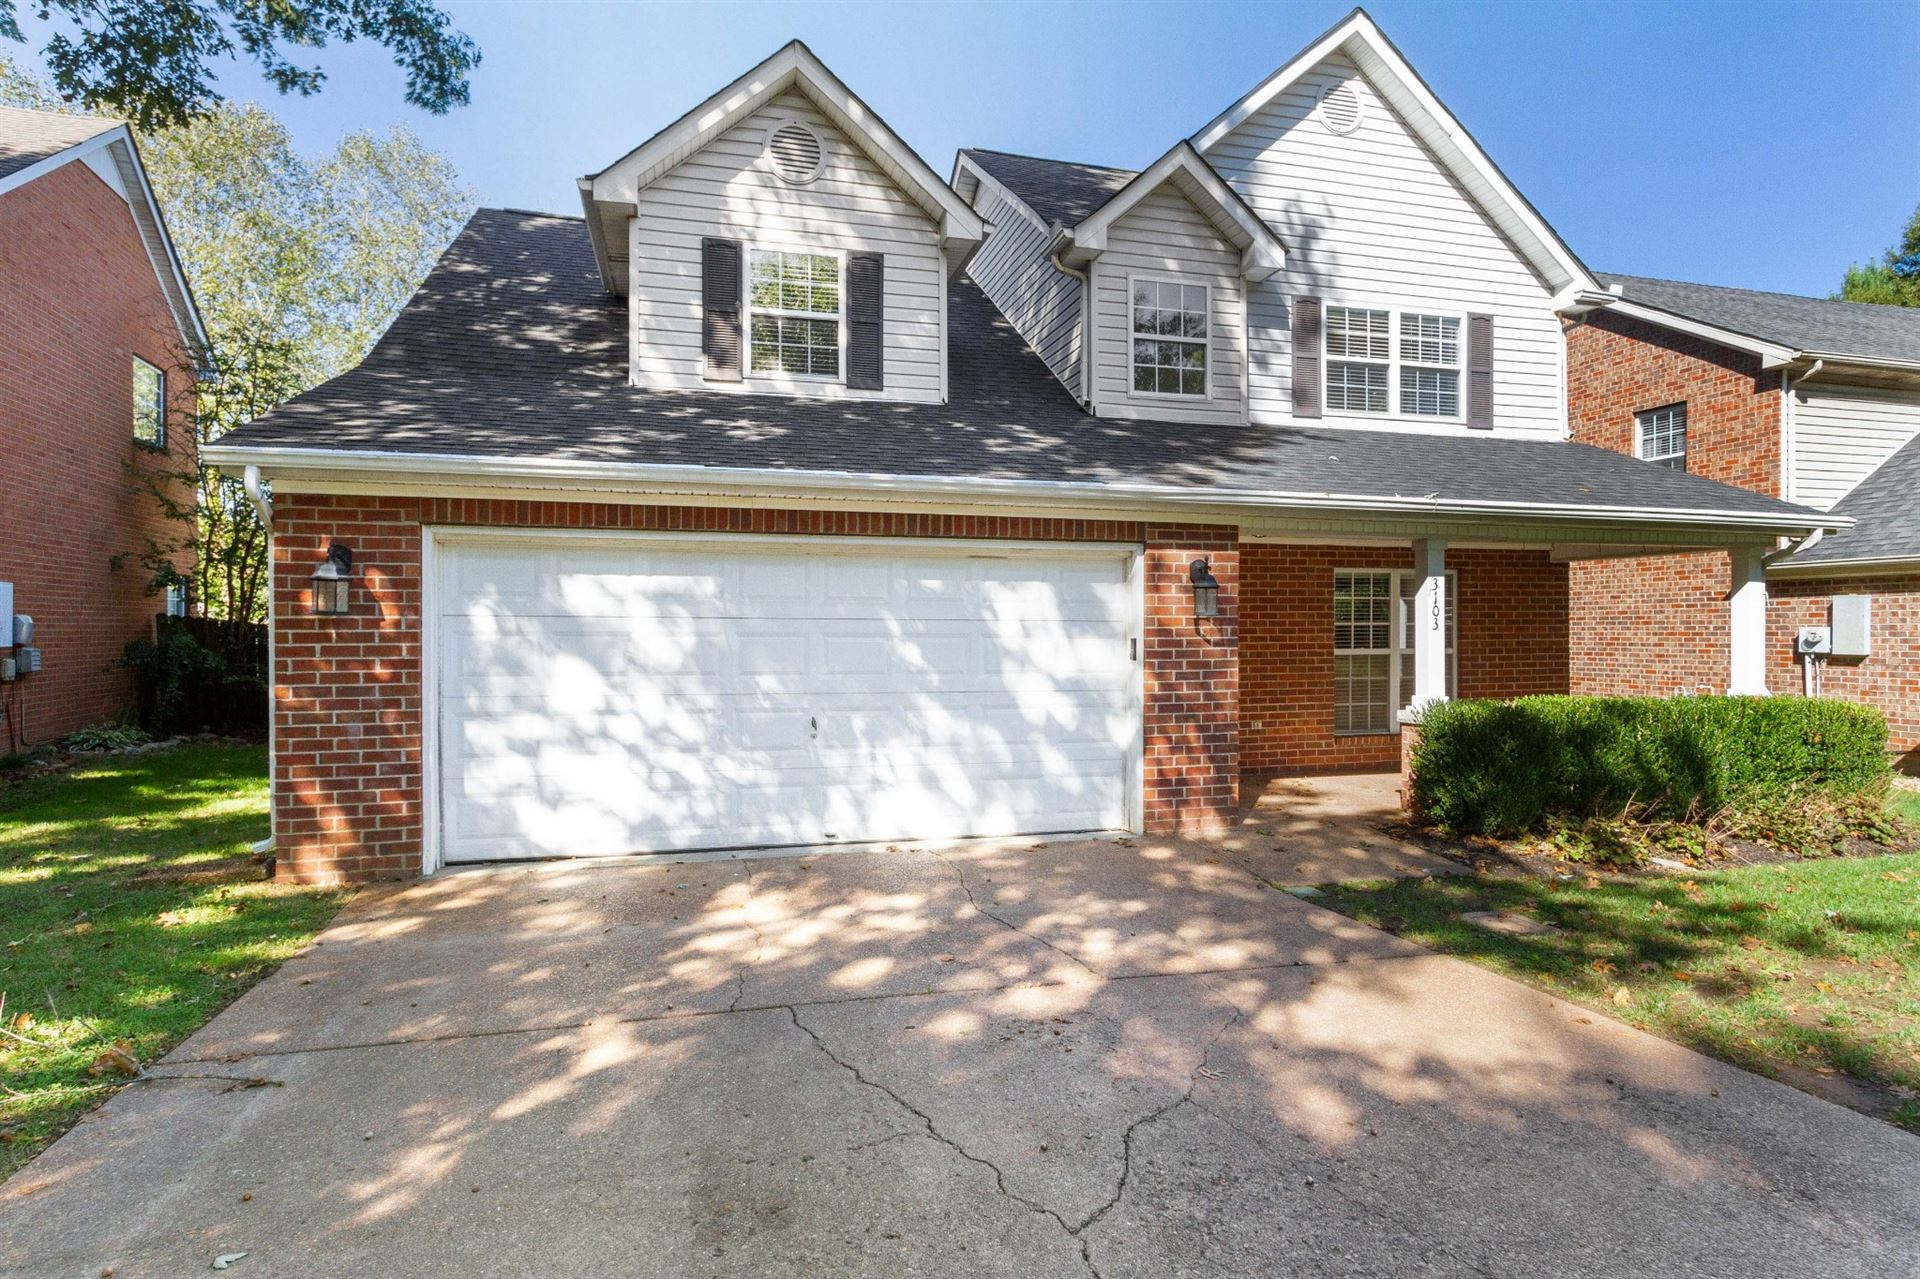 Photo of 3103 Winberry Dr, Franklin, TN 37064 (MLS # 2301123)